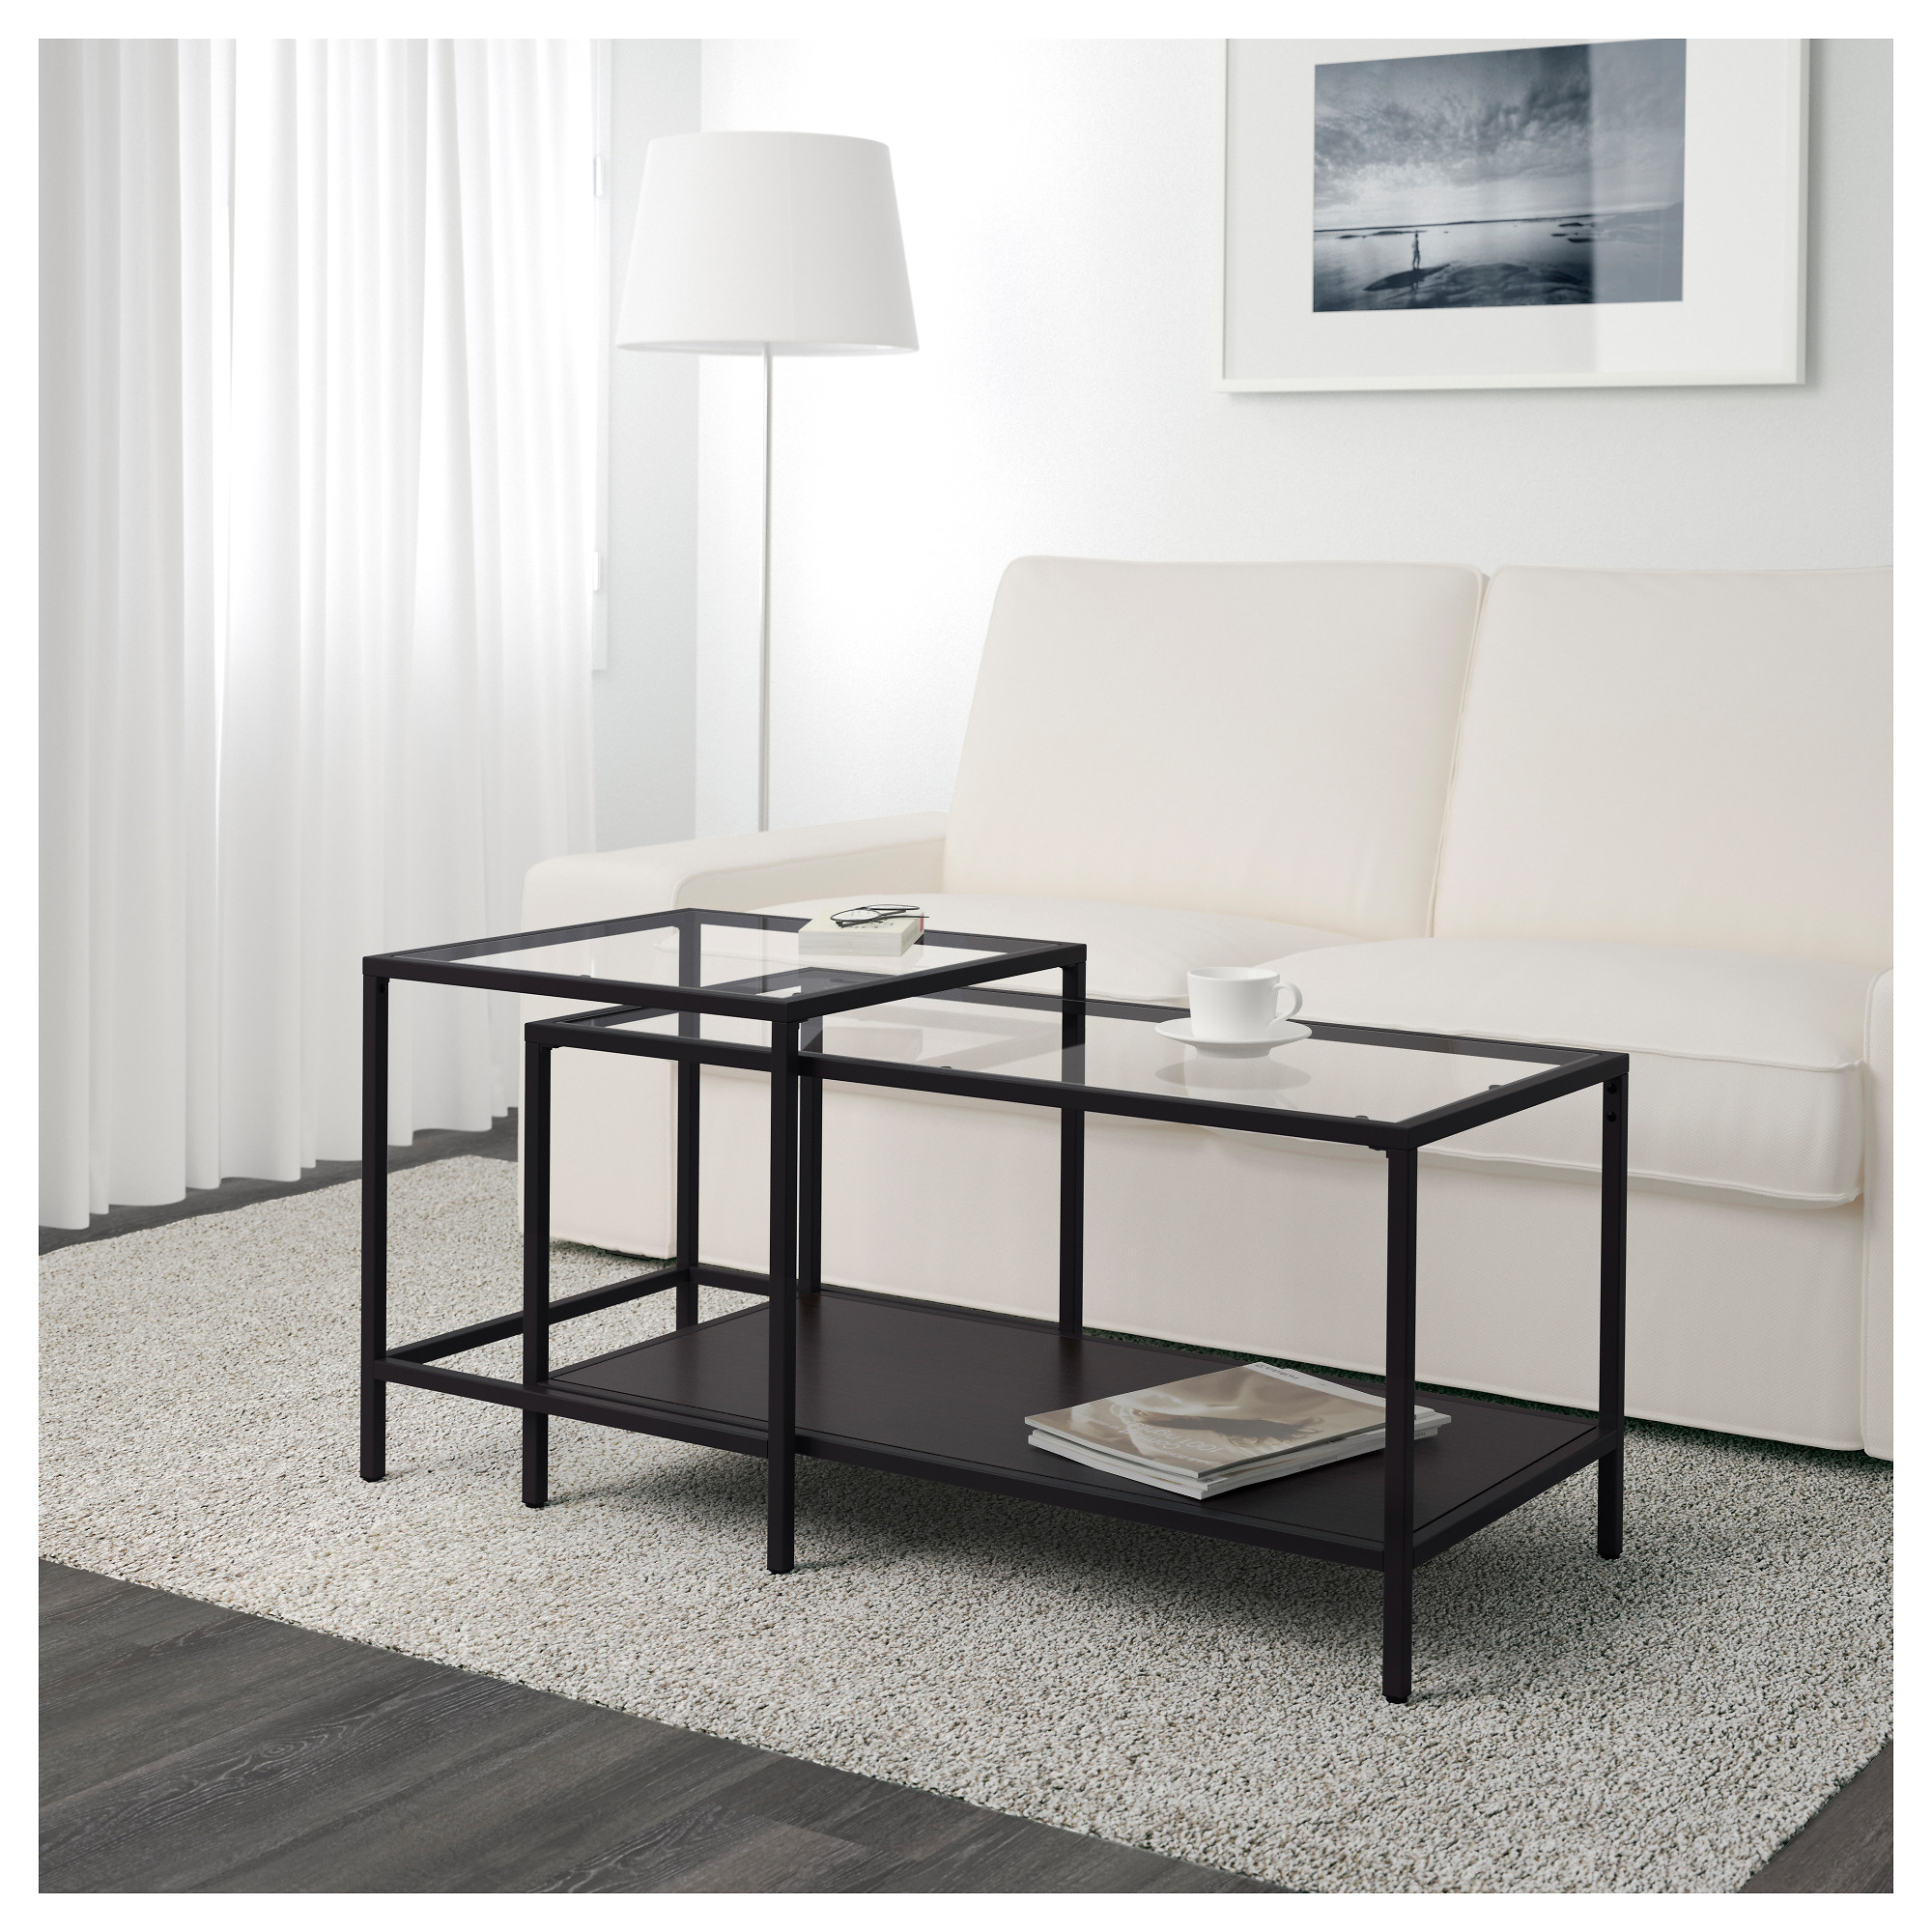 VITTSJ– Nesting tables set of 2 black brown glass IKEA